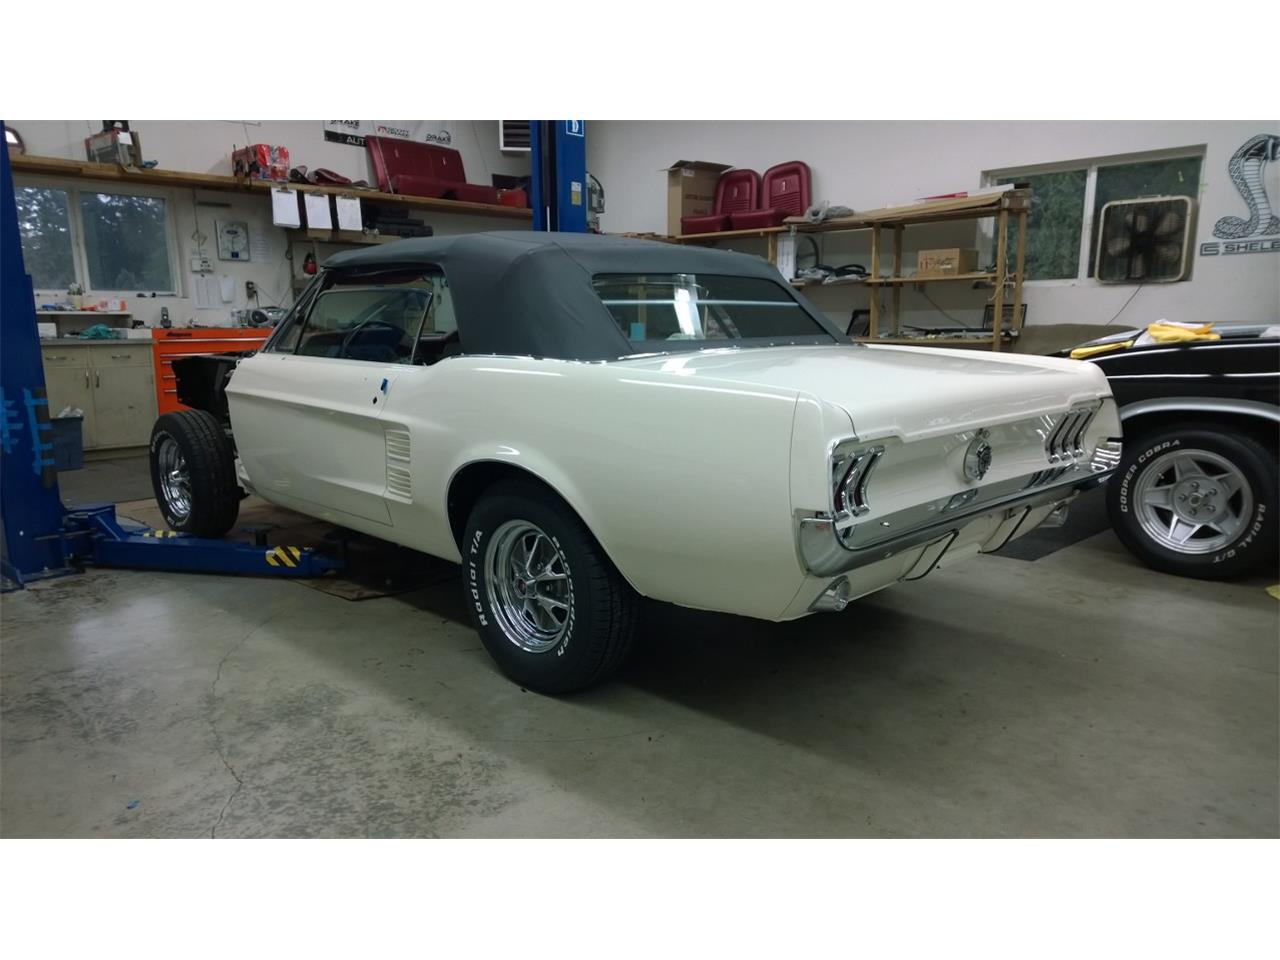 Large Picture of Classic '67 Ford Mustang GT located in QLD - $120,000.00 Offered by a Private Seller - QADD